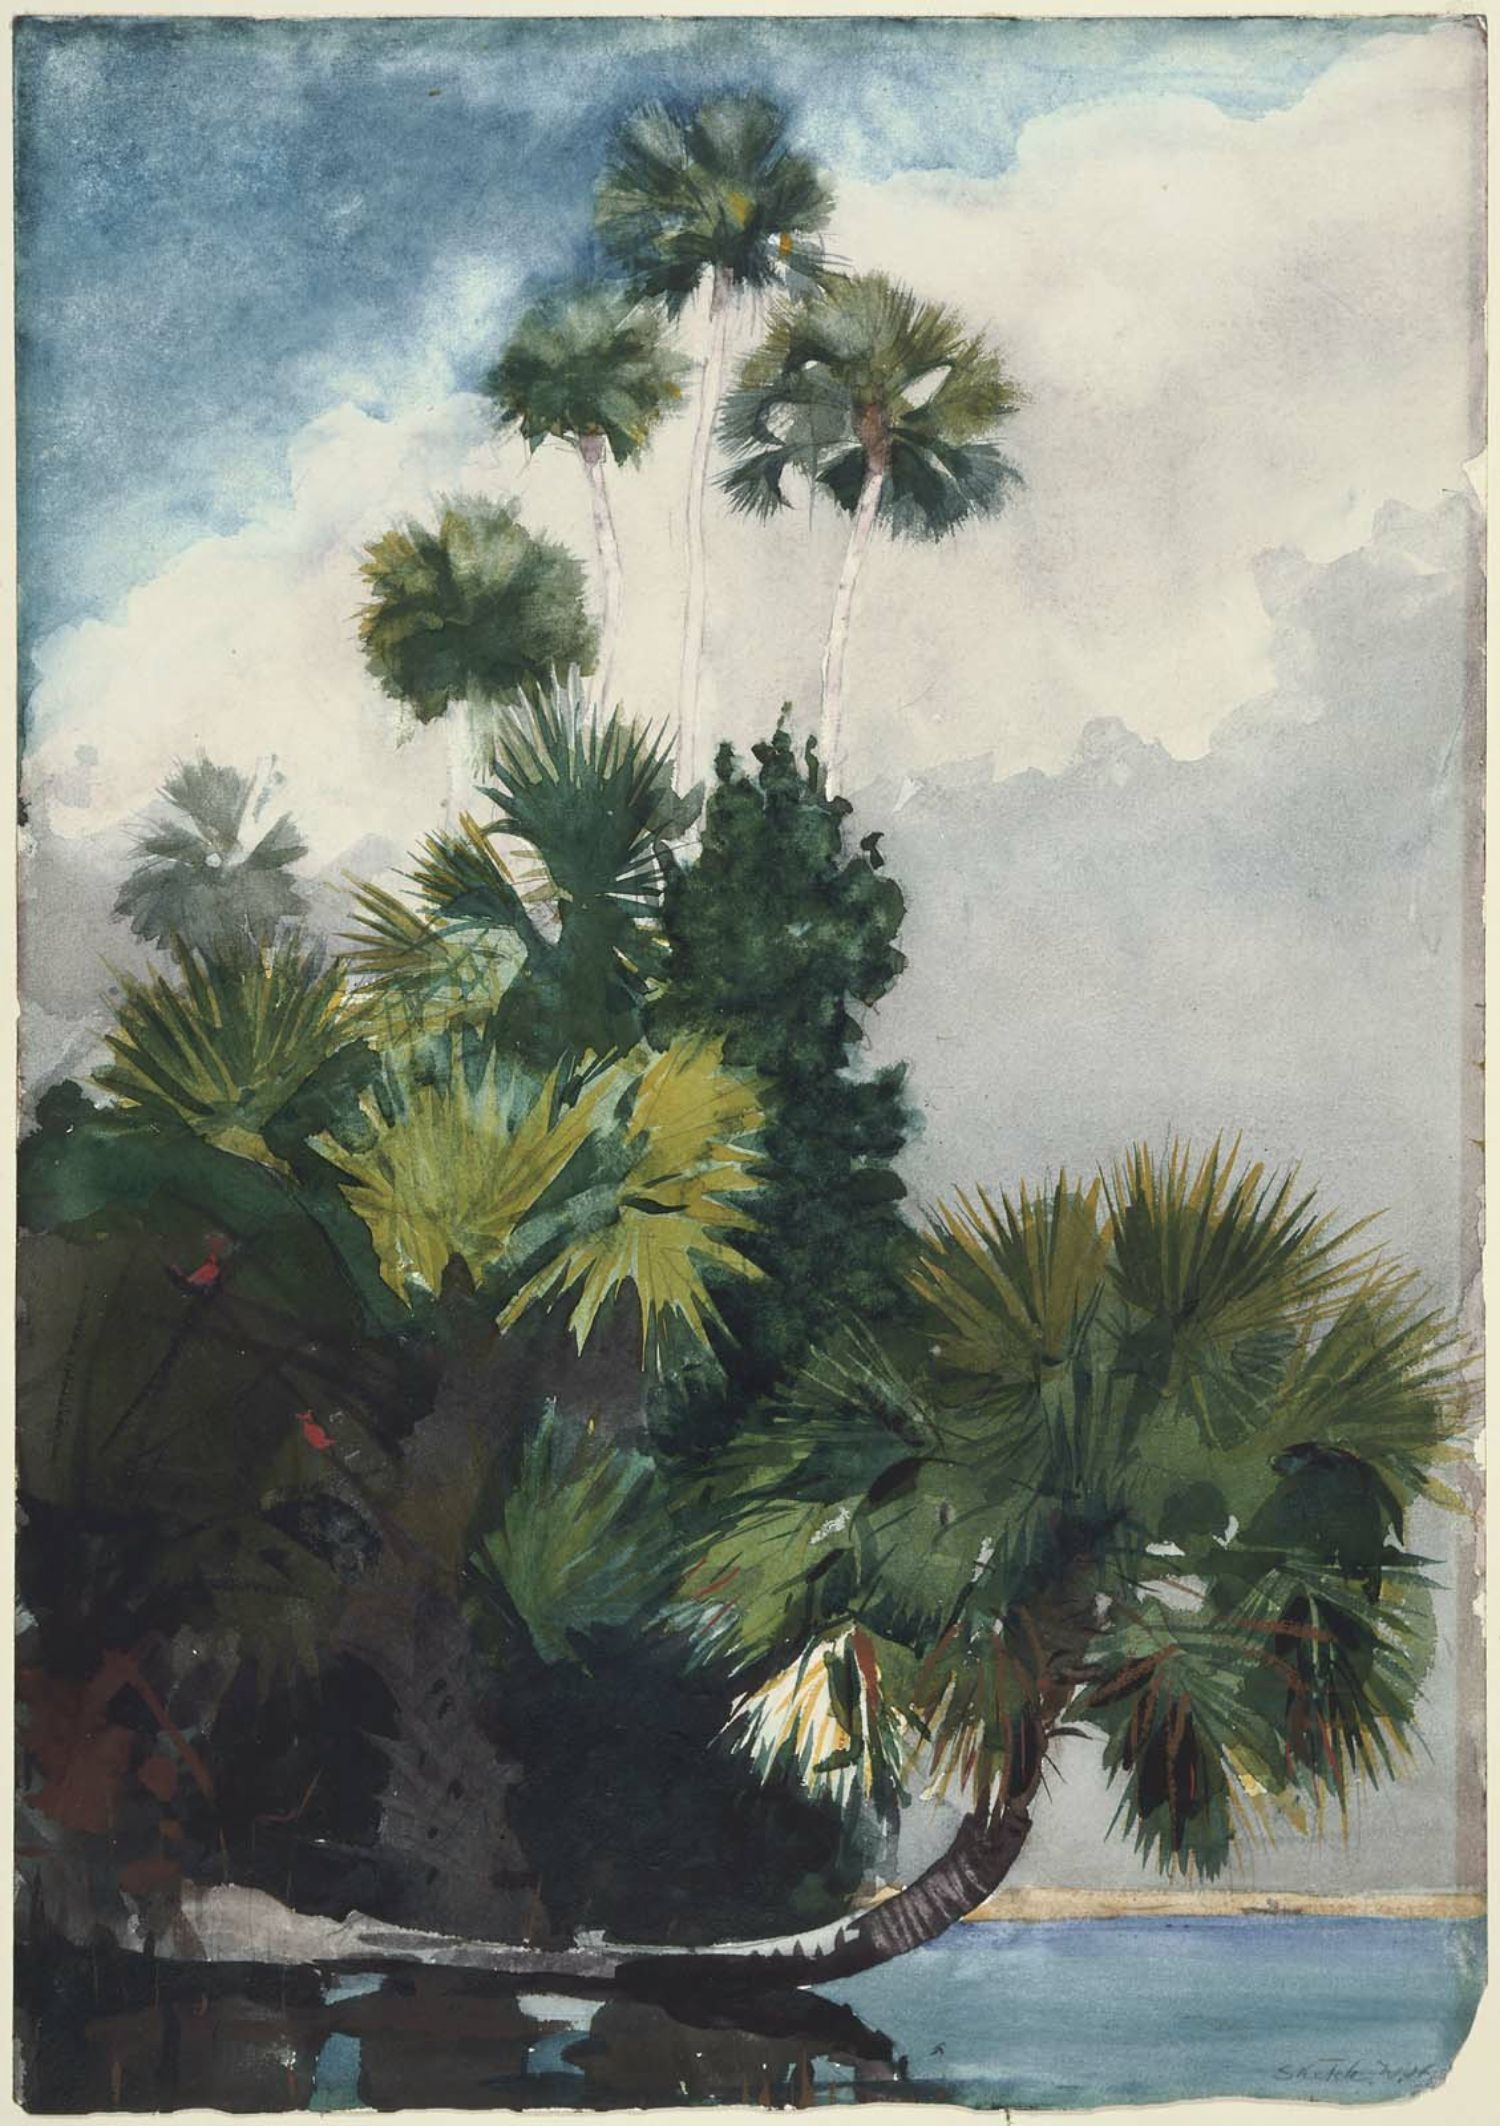 Watercolor artist magazine palm coast fl - Find This Pin And More On Watercolors Winslow Homer Palm Trees Florida Paintings